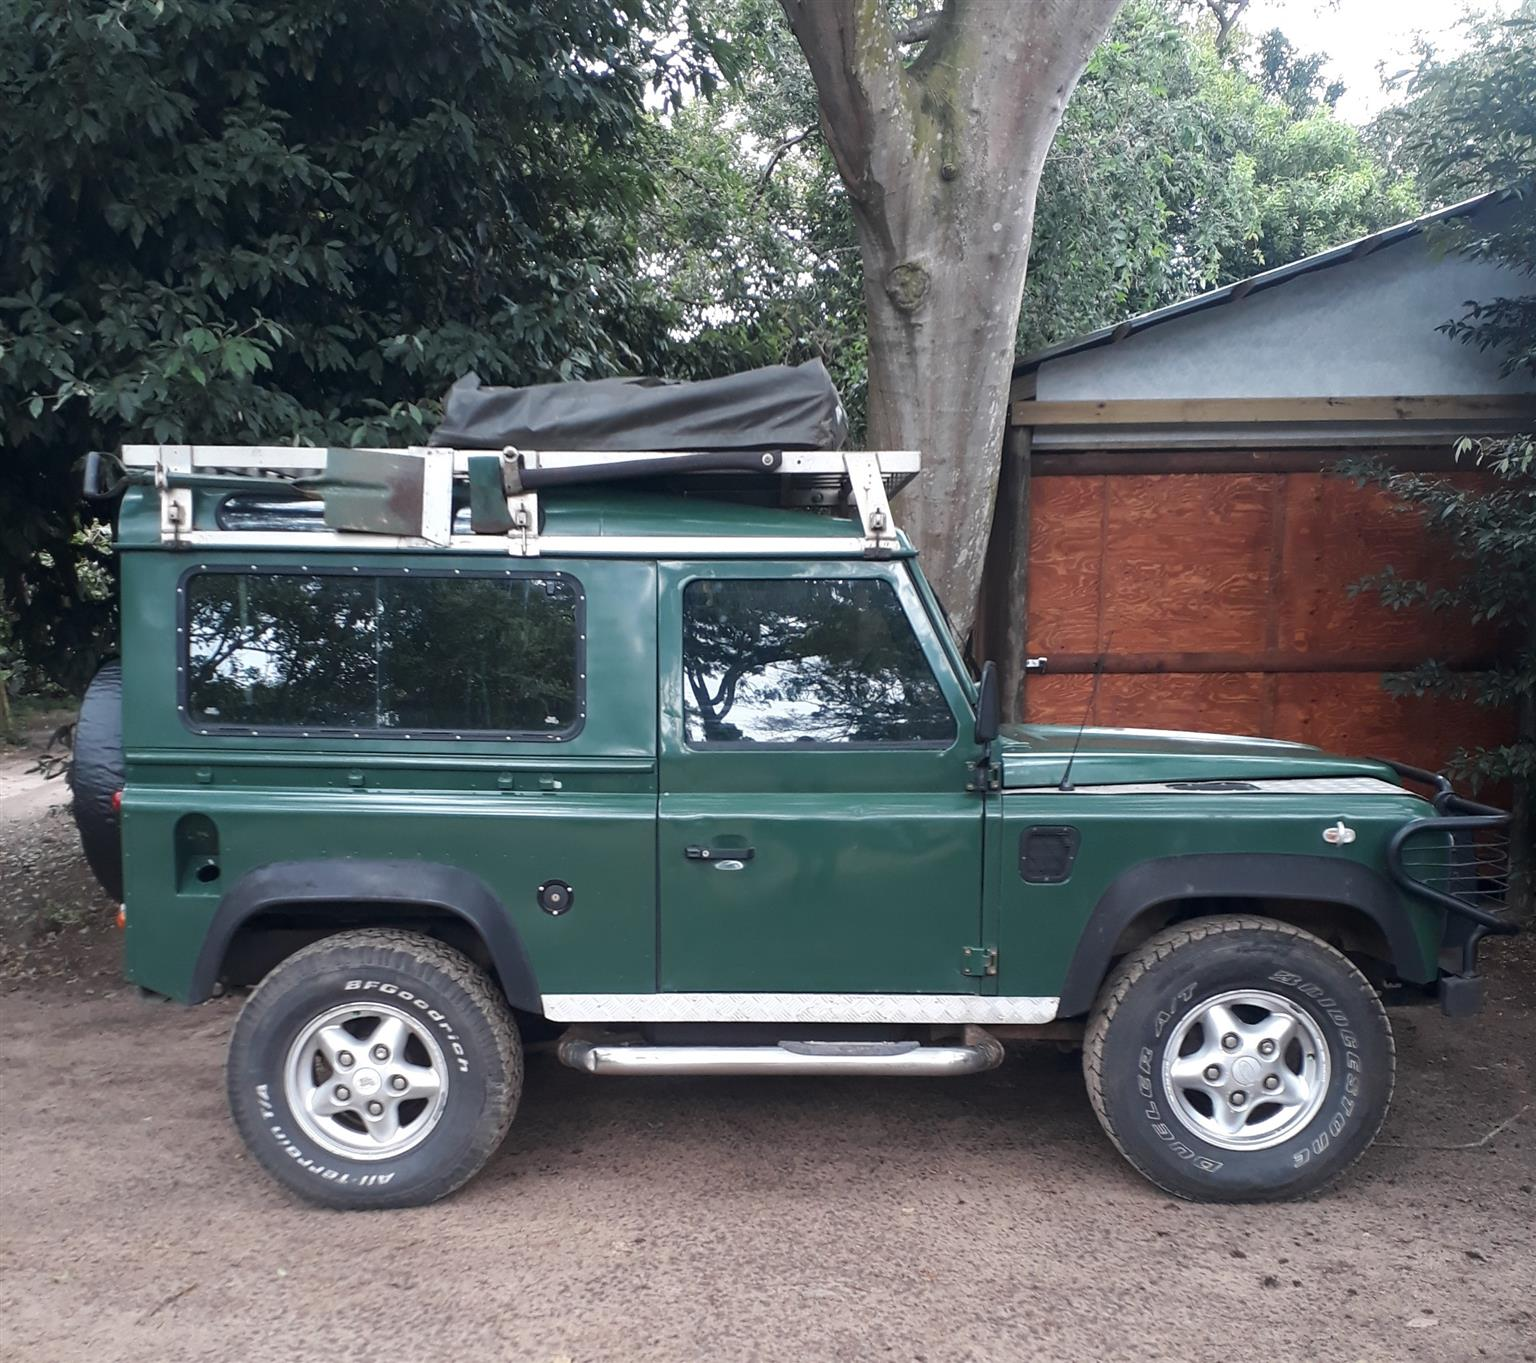 landrover l used c stock vienna va diesel quad for sale rover land defender turbo htm cab main